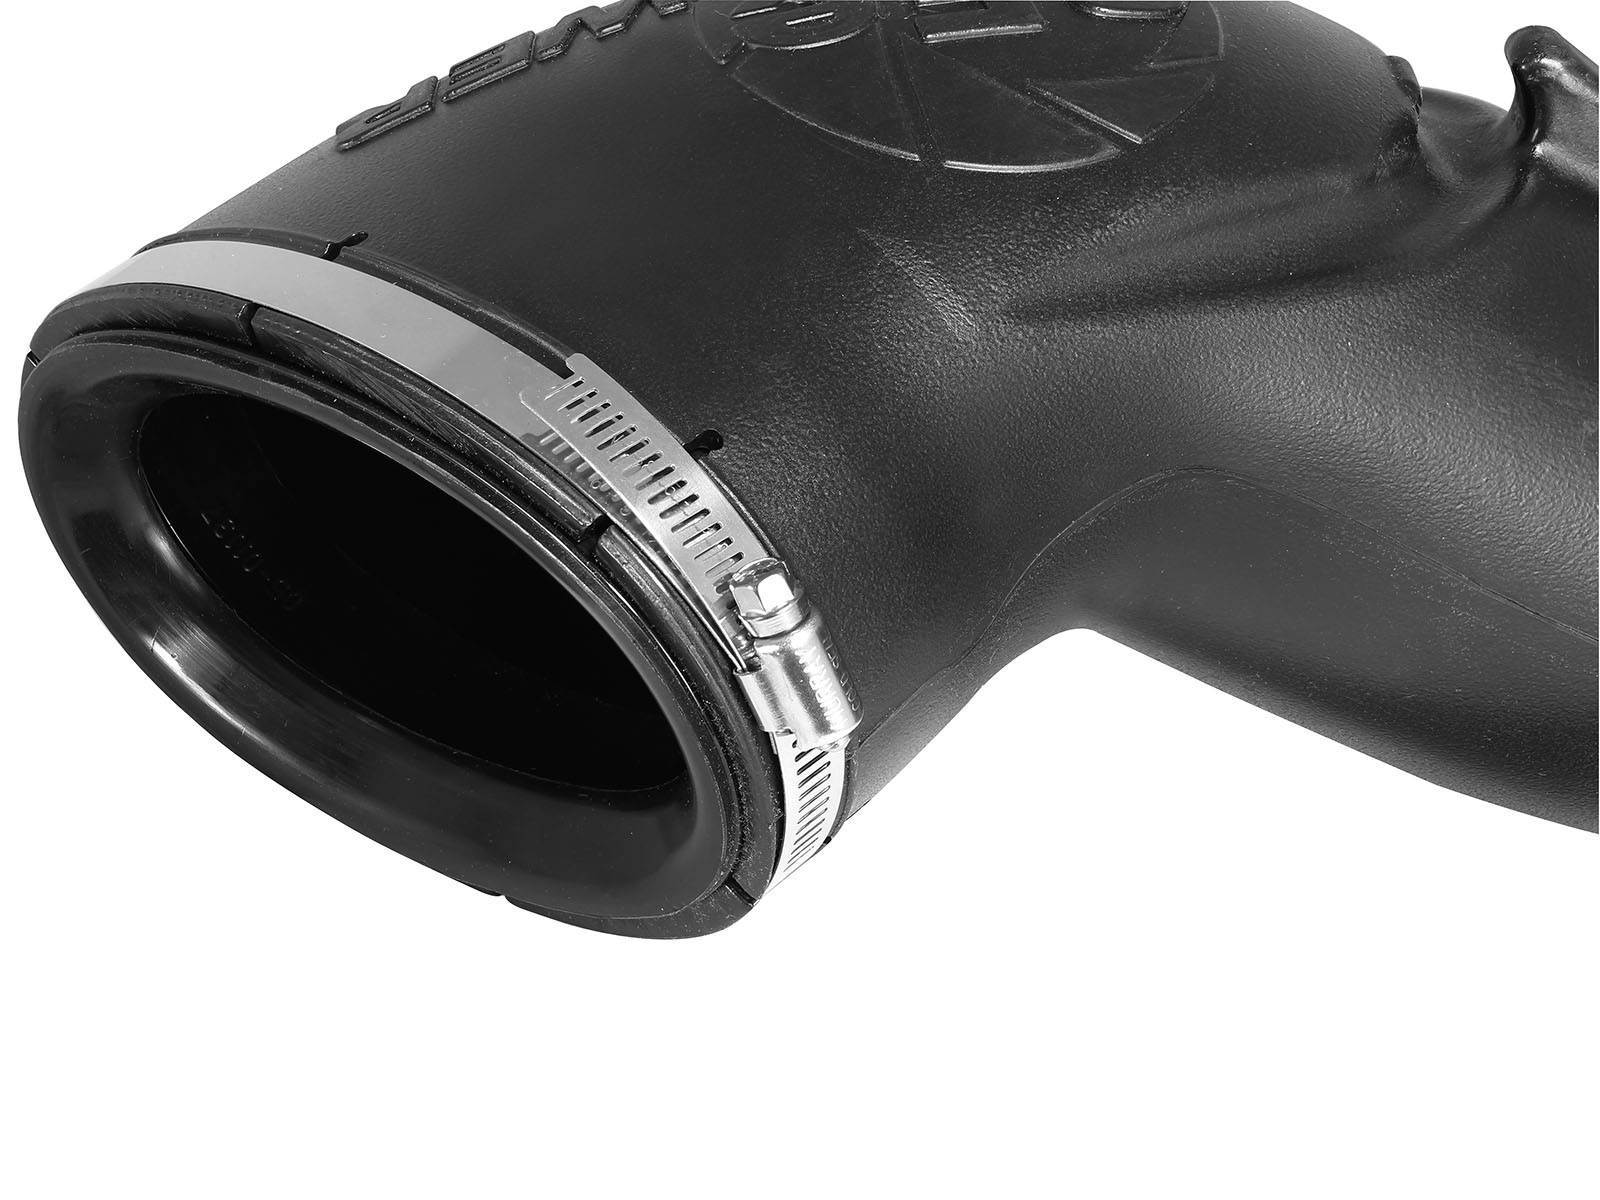 75-11872-1 - aFE Pro Guard 7 Performance Cold Air Intake System for 2011-2016 Ford Powerstroke 6.7L diesels